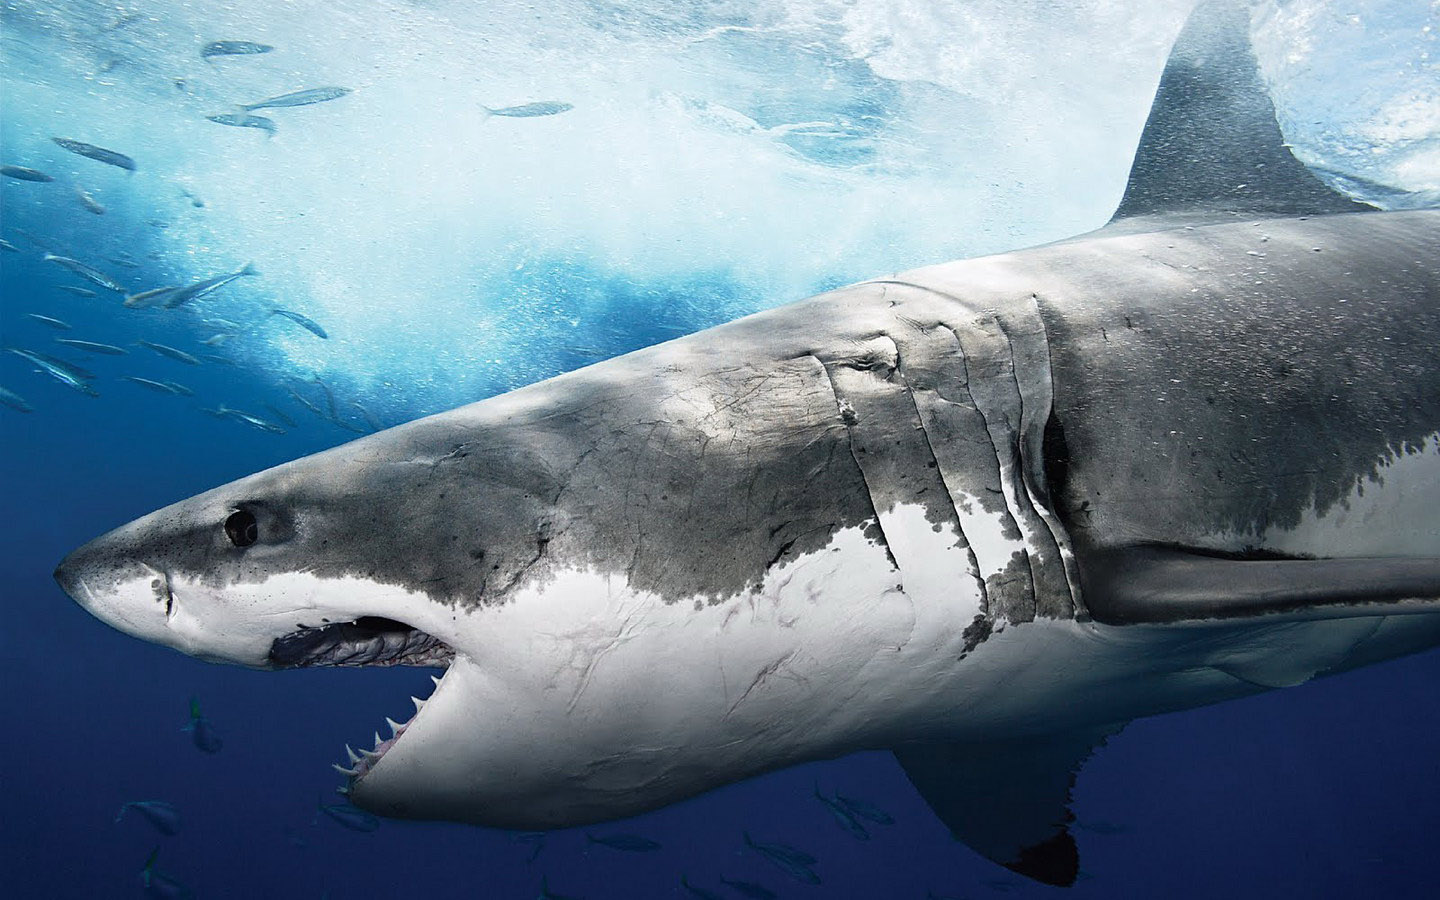 Shark Wallpaper HD Shark Pictures - HD Animal Wallpapers